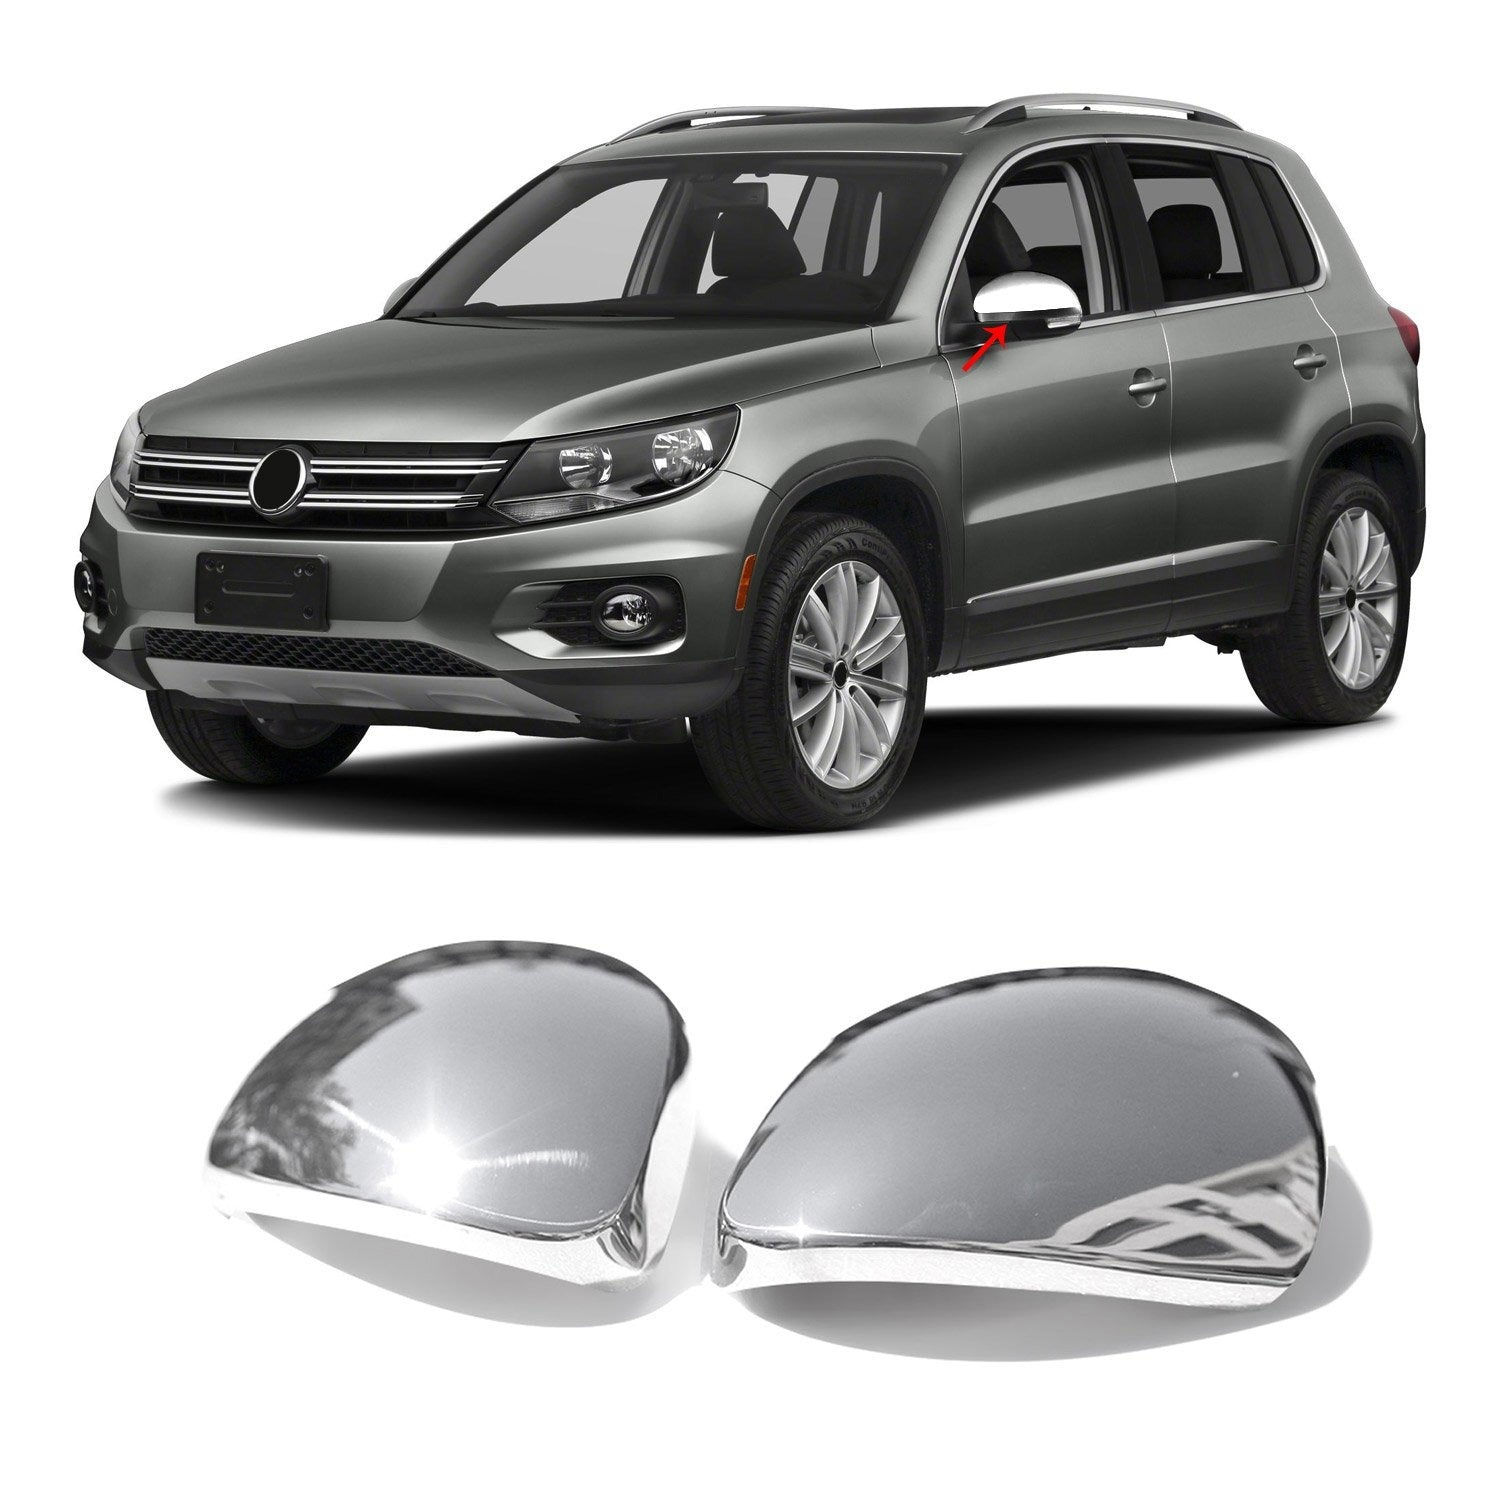 Fits VW Tiguan 2009-2016 Stainless Steel Chrome Side Mirror Cover Cap 2 Pcs